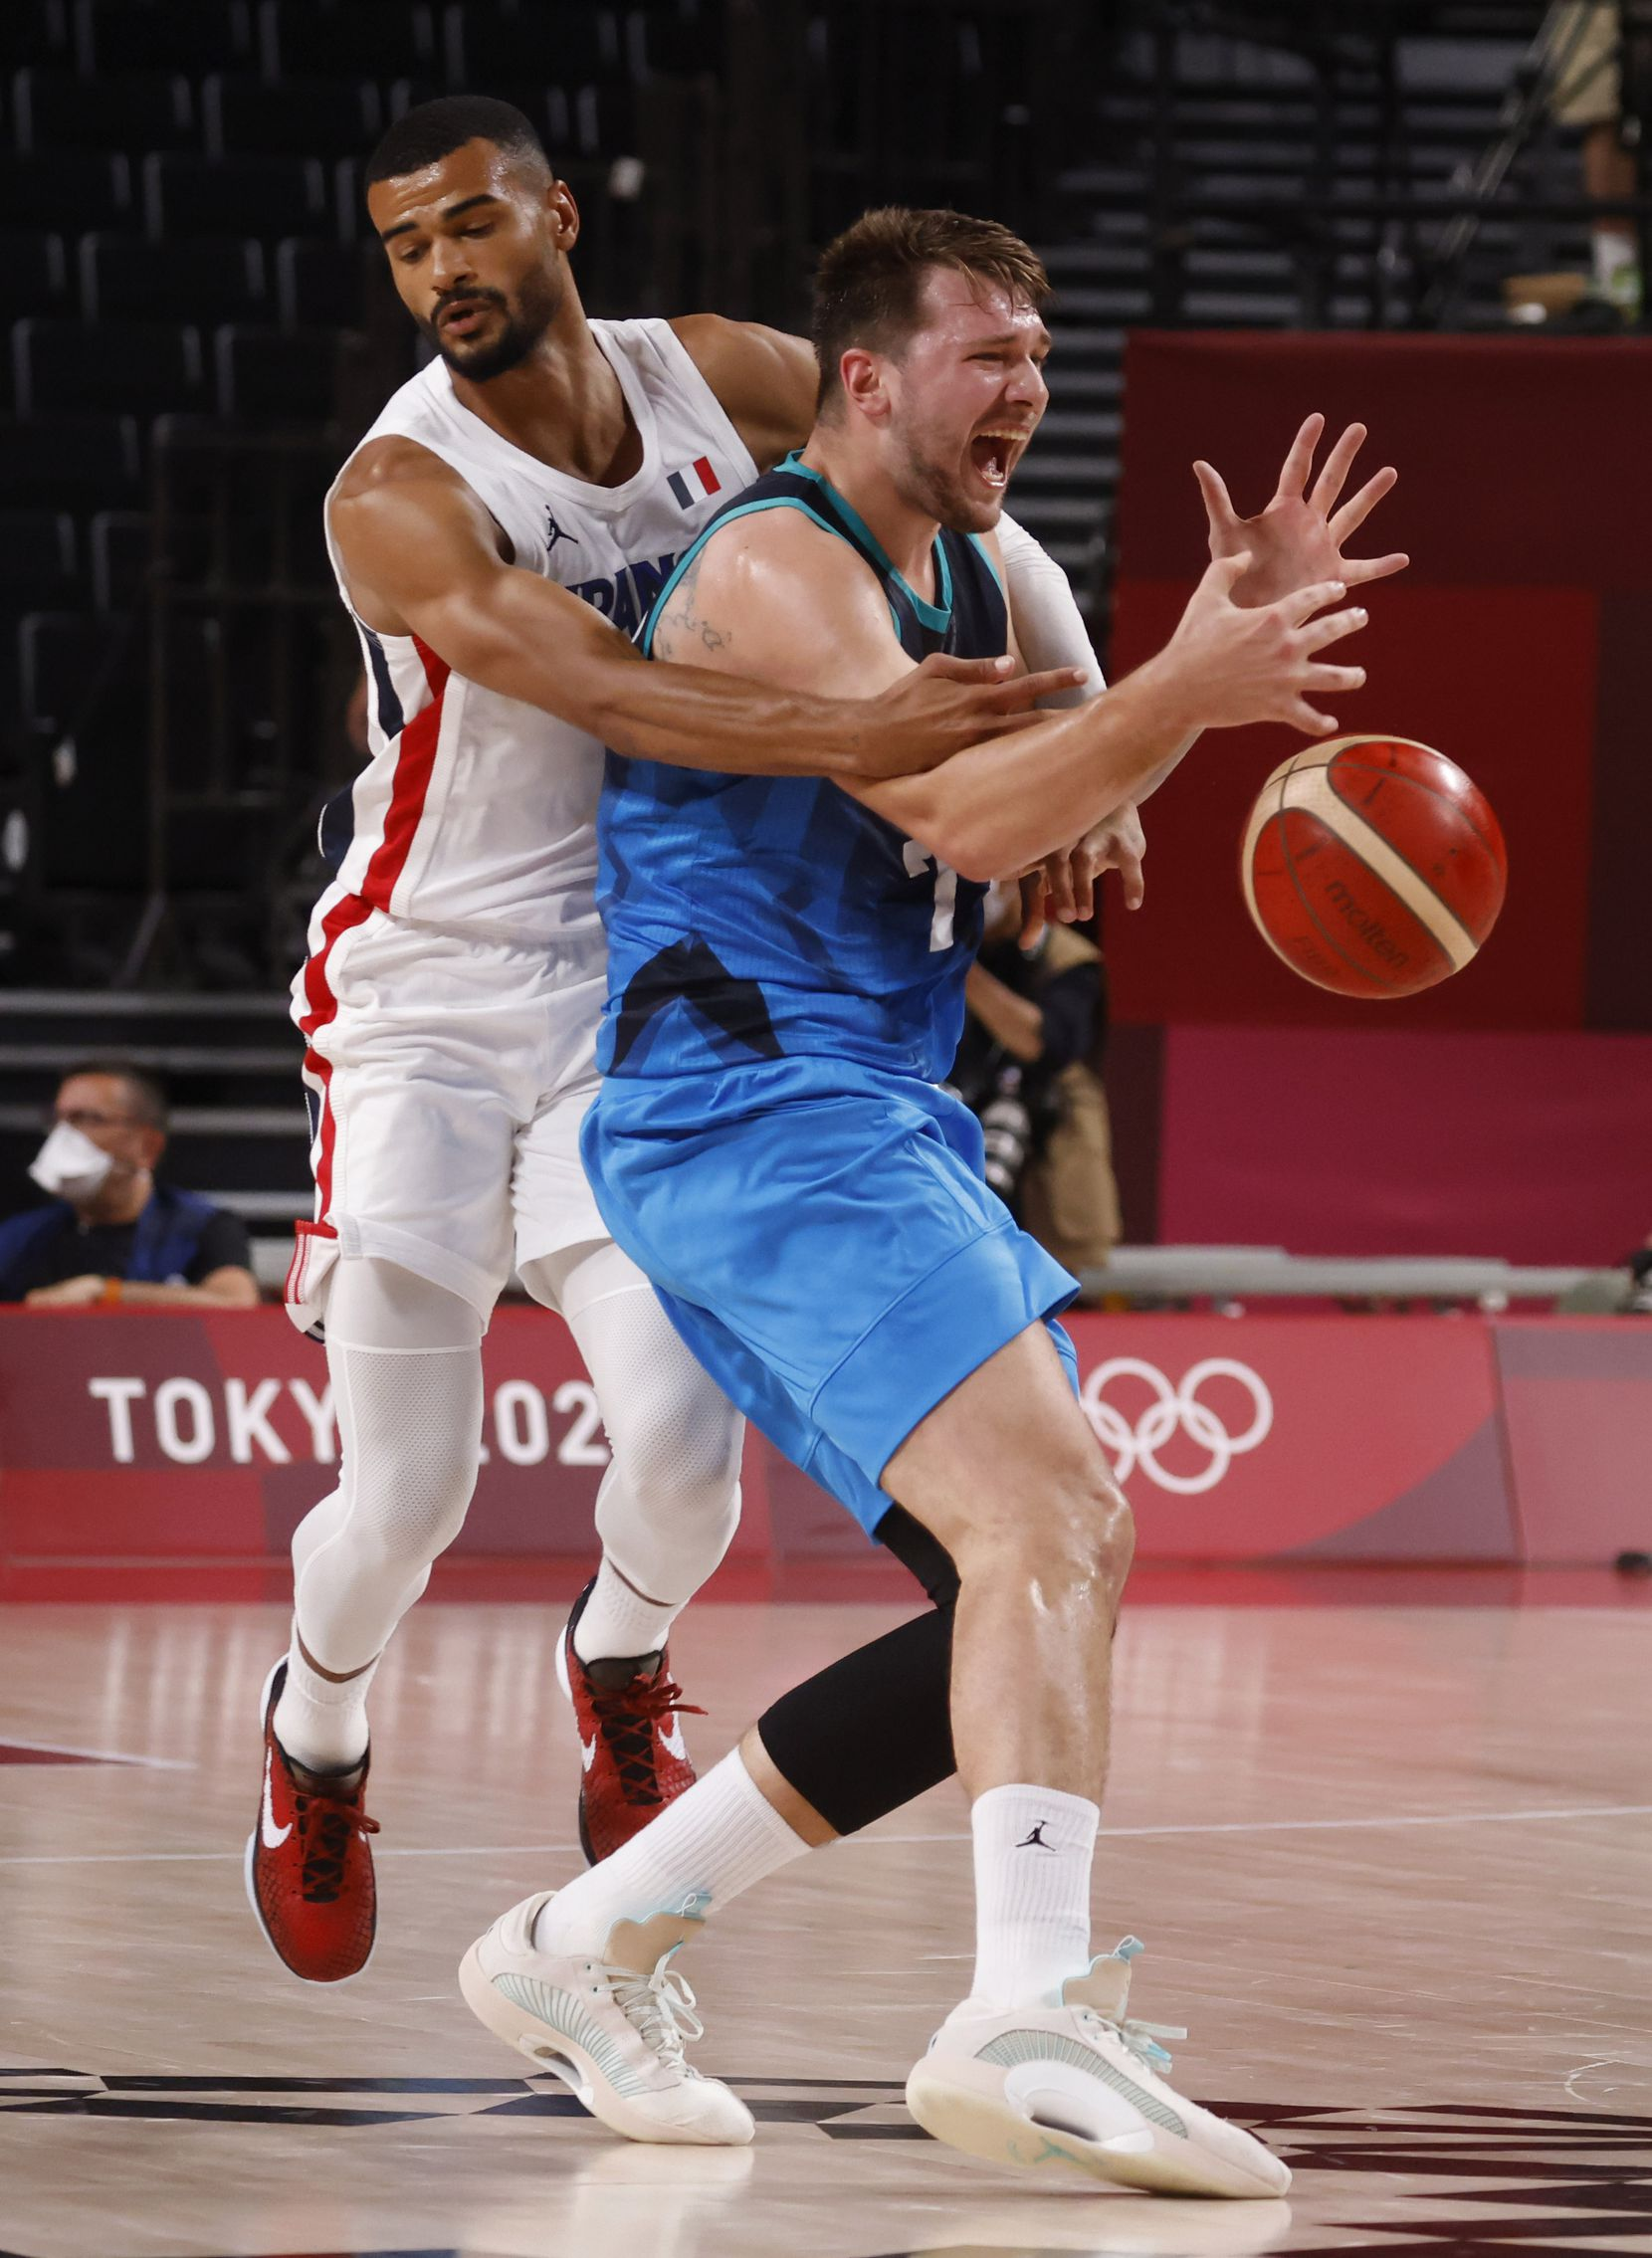 Slovenia's Luka Doncic (77) is fouled by France's Timothe Luwawu Cabarrot (3) during the first half of a men's basketball semifinal at the postponed 2020 Tokyo Olympics at Saitama Super Arena, on Thursday, August 5, 2021, in Saitama, Japan. (Vernon Bryant/The Dallas Morning News)